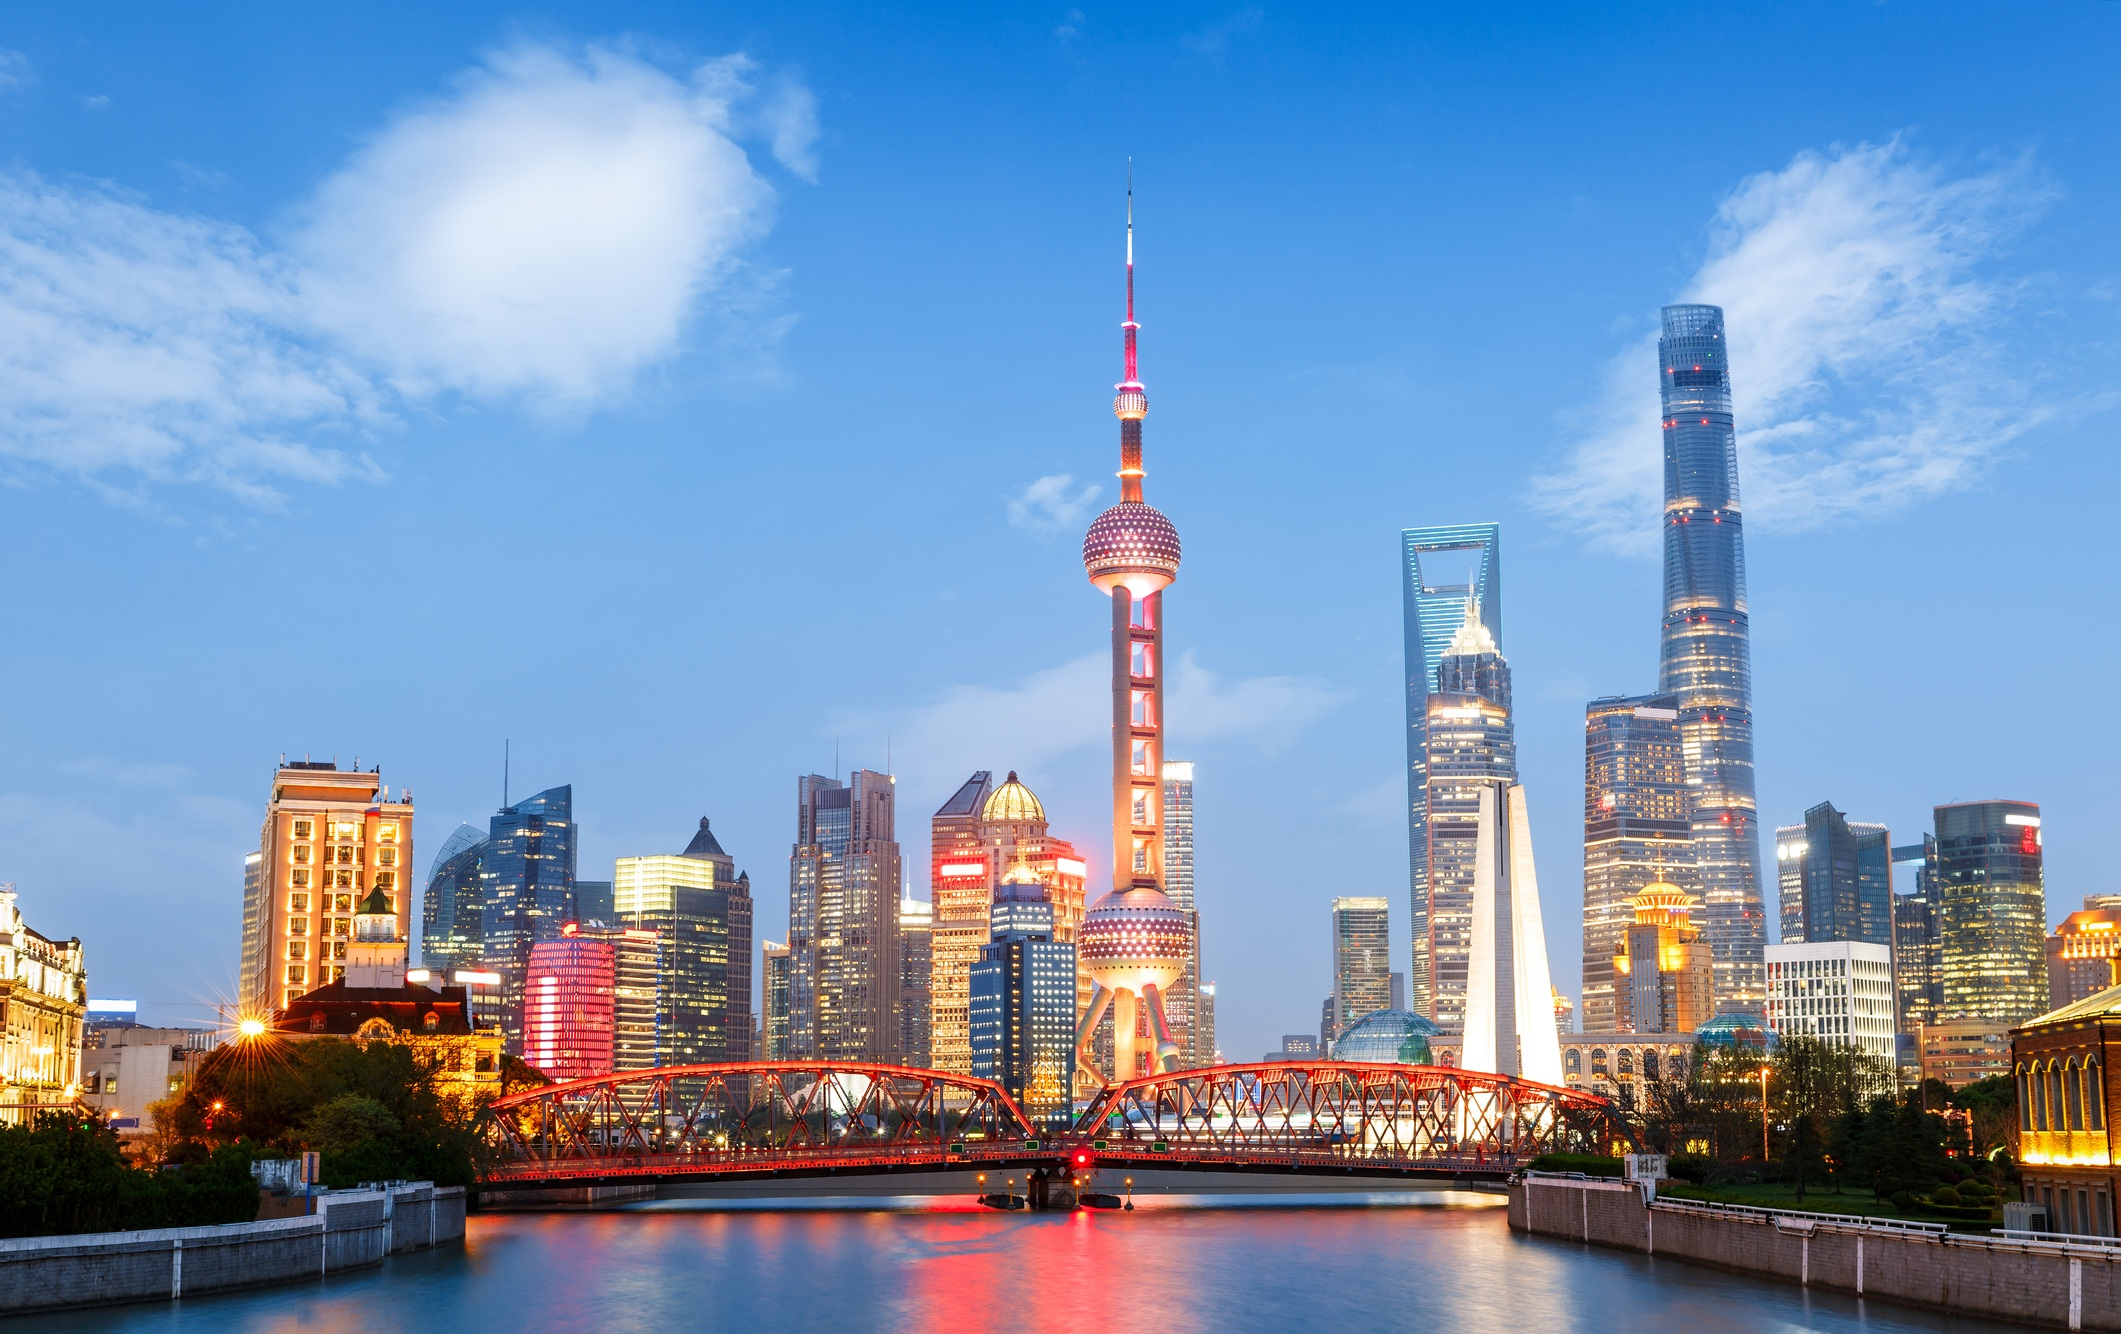 19th IPA World Congress, Shanghai, China Summer 2023 Conference Chair: Xiuli Wang, MD, PhD   More information coming soon.